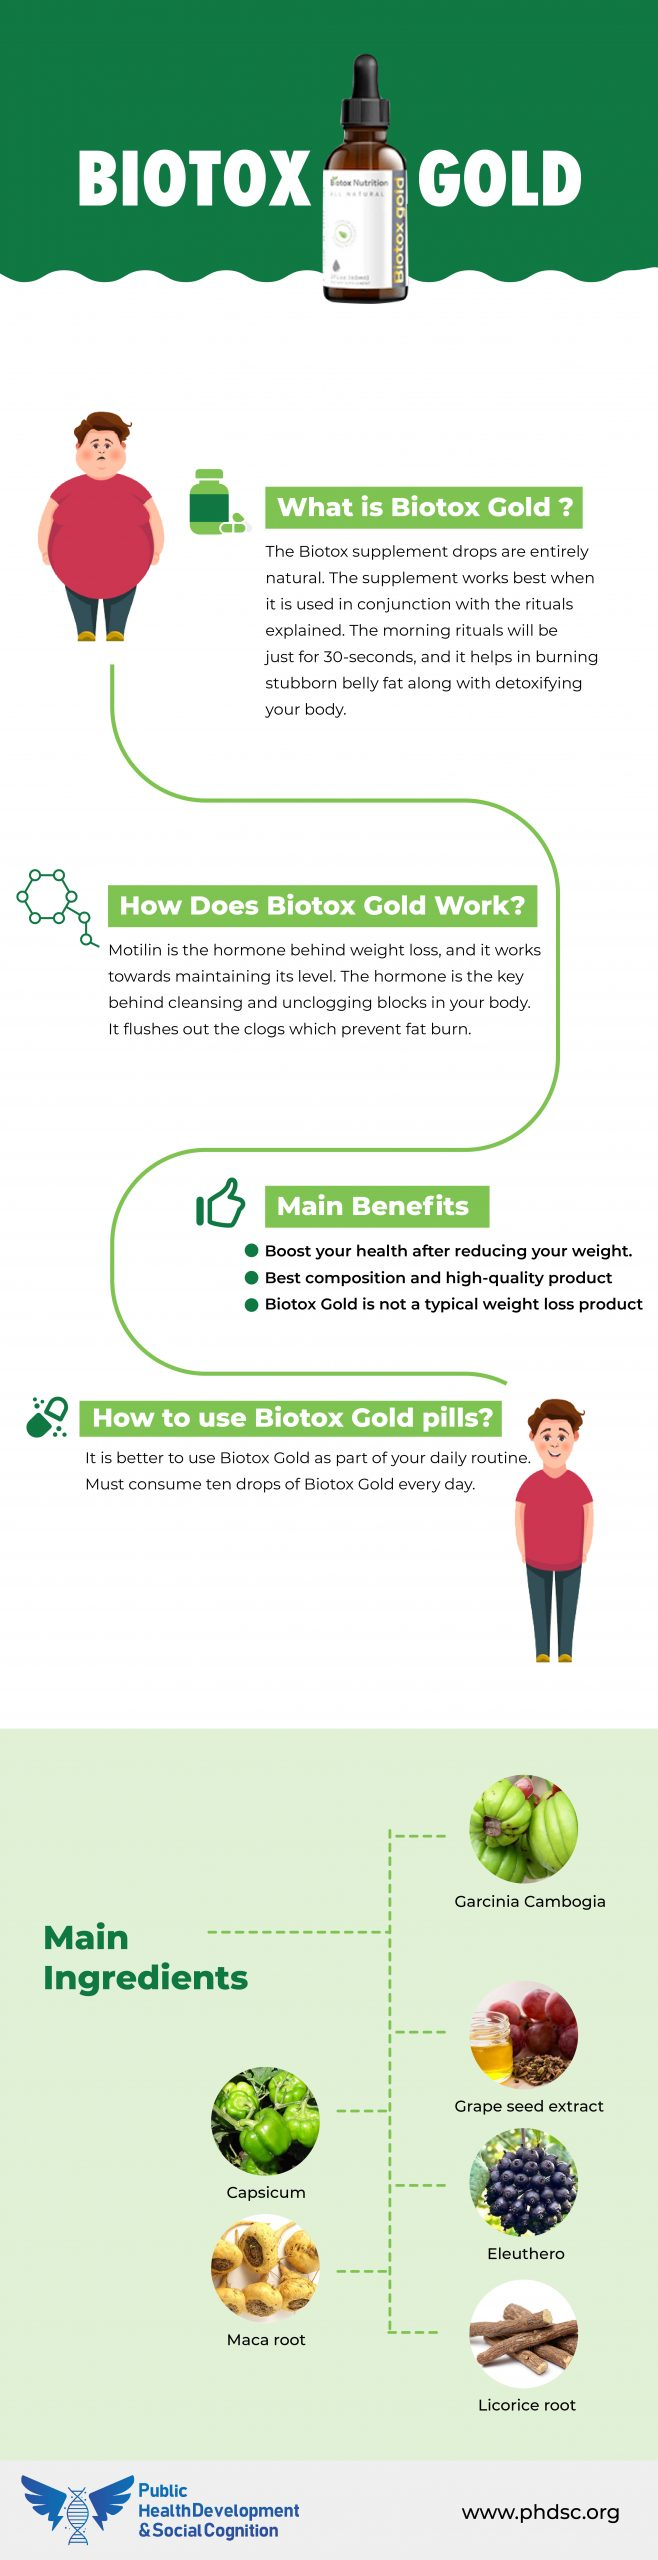 Biotox Gold review Infrographics